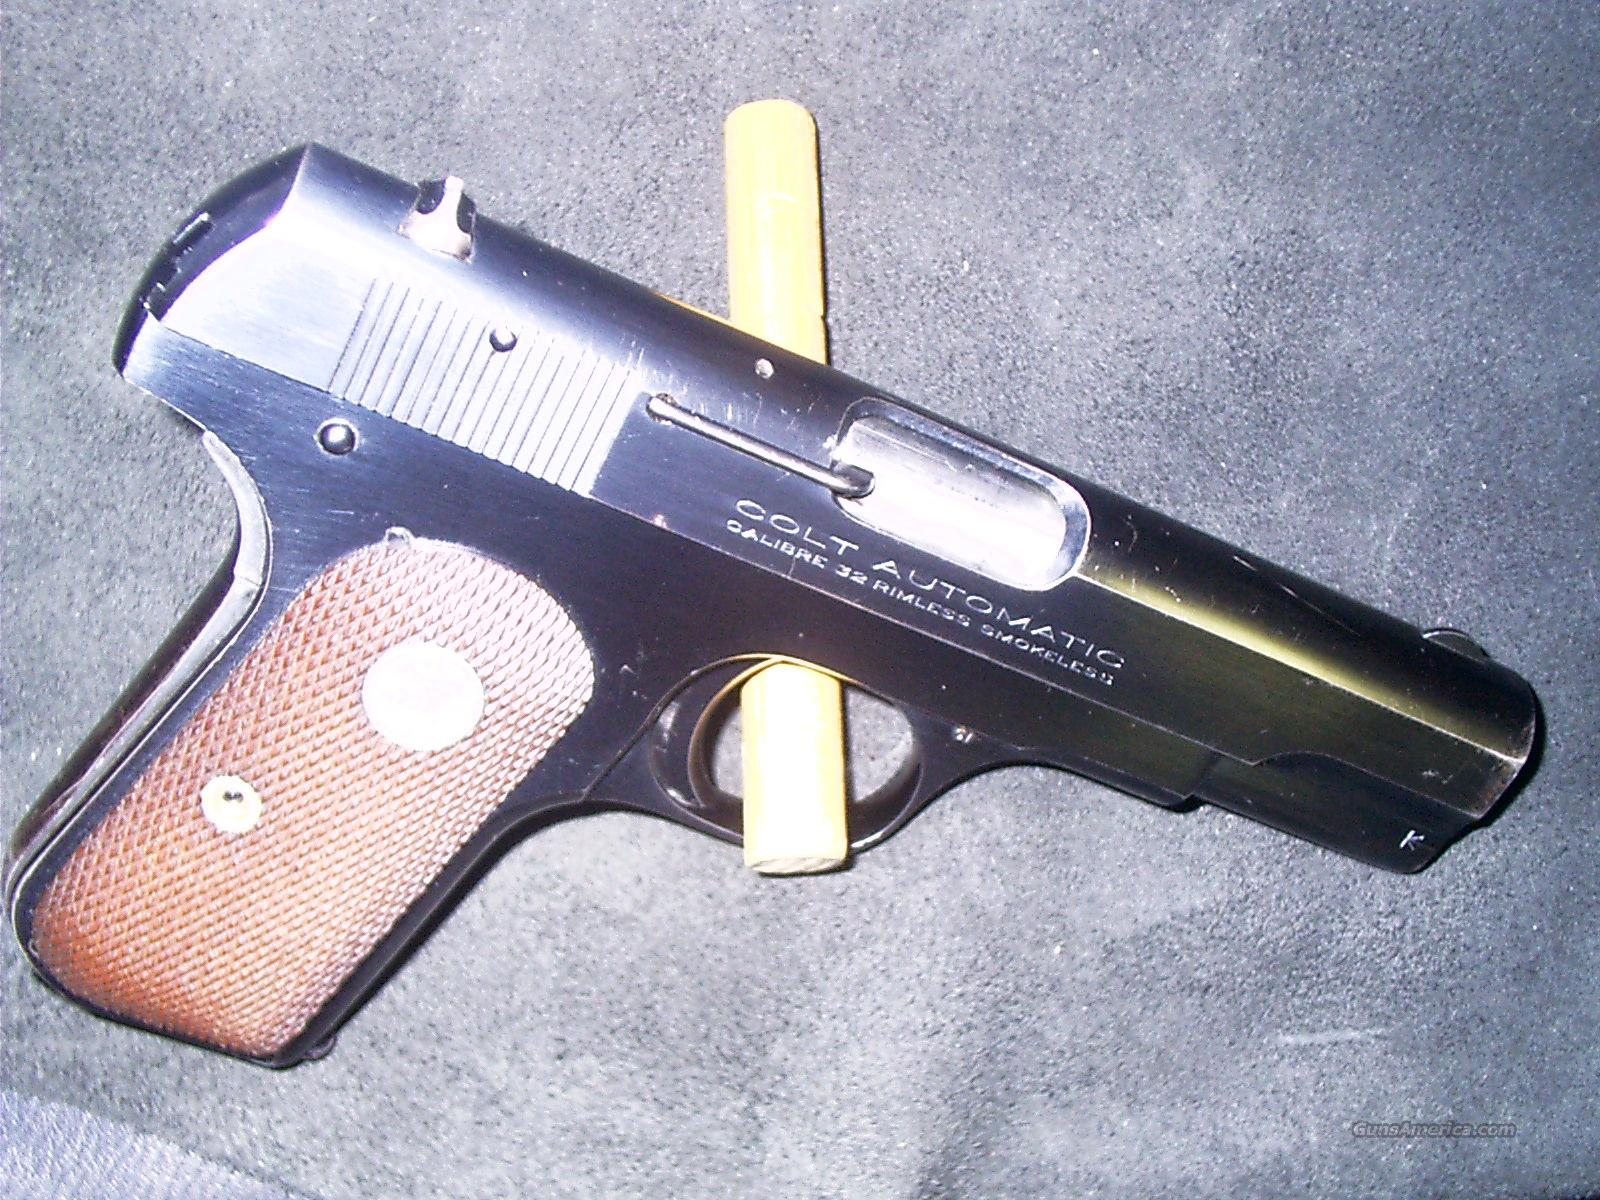 COLT 1903 POCKET .32 RIMLESS SMOKELESS  Guns > Pistols > Colt Automatic Pistols (.25, .32, & .380 cal)